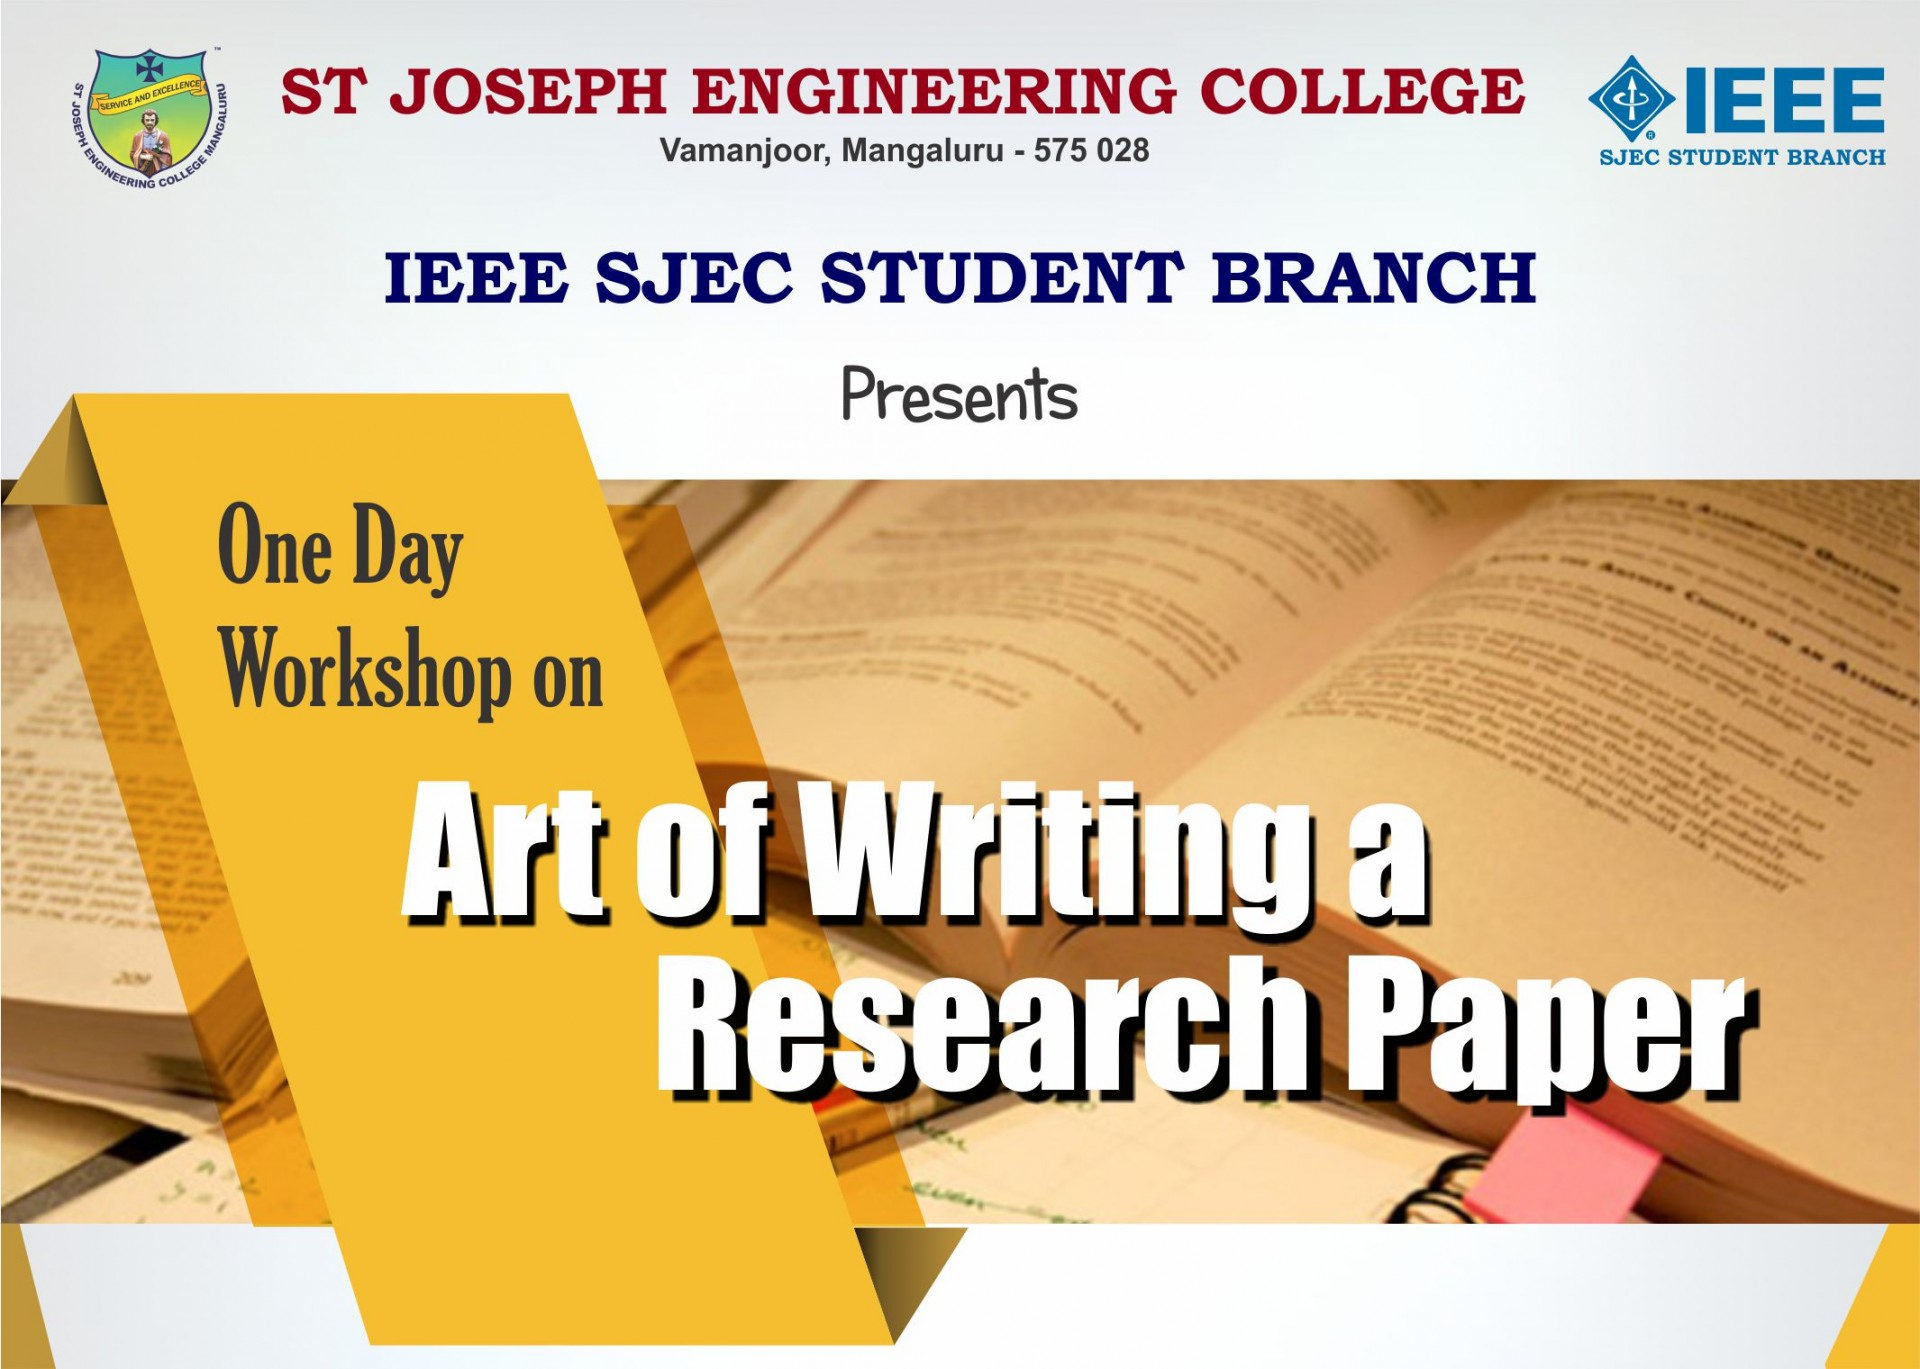 006 Workshop Banner Writing Of Research Fascinating Paper Sample Introduction Steps A Pdf 1920